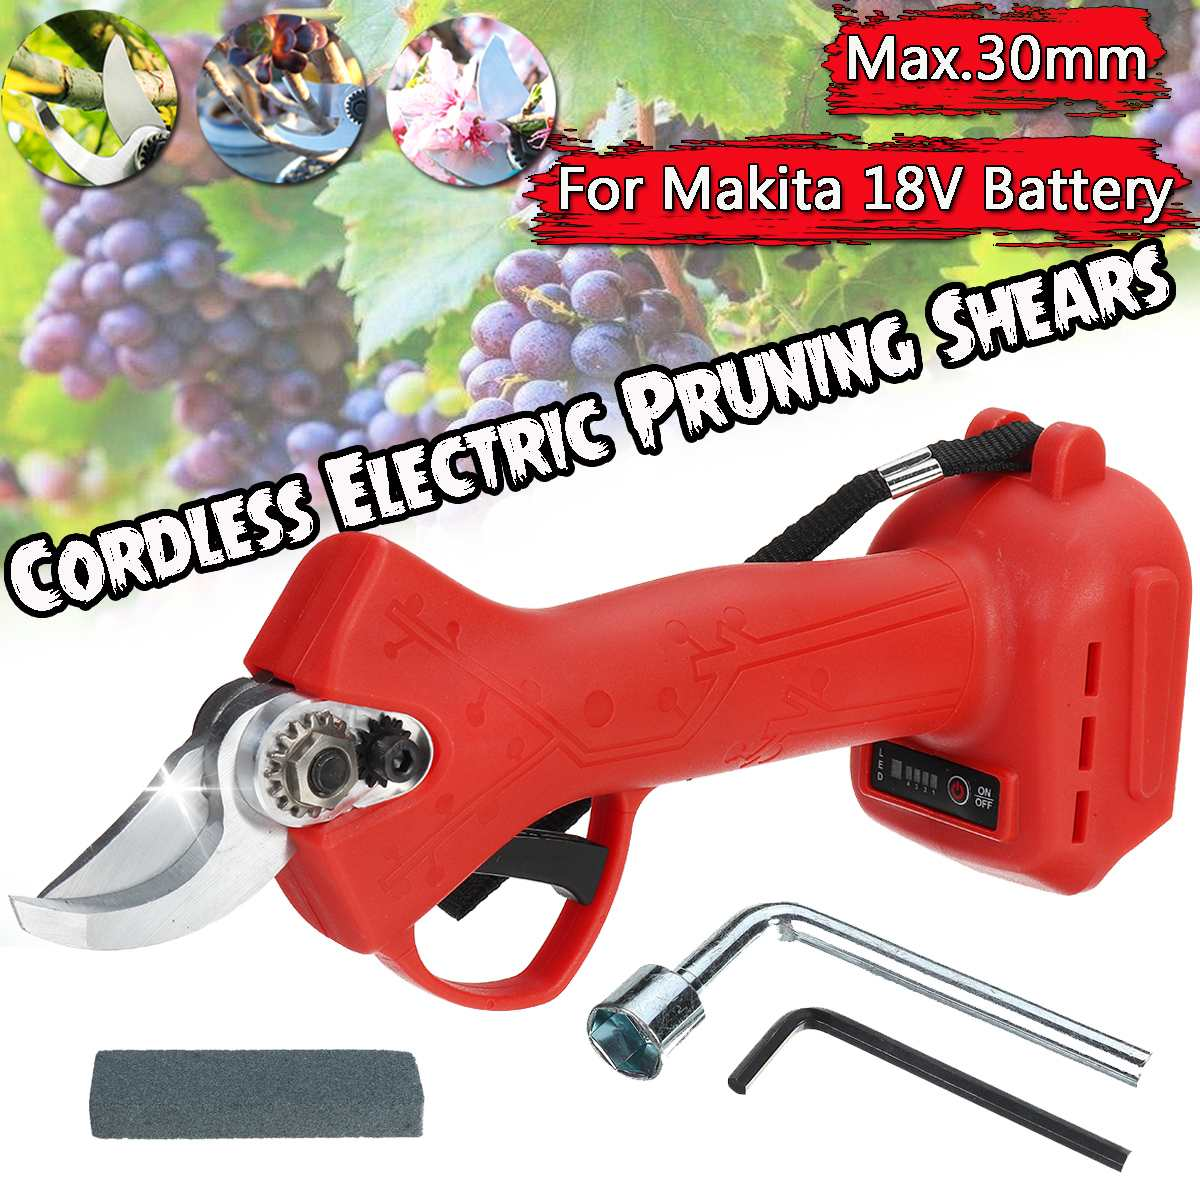 1PC Cordless Electric Pruner Pruning Shears Efficient Fruit Tree Bonsai Pruning Power Tool Branch Cutter for Makita 18V Battery